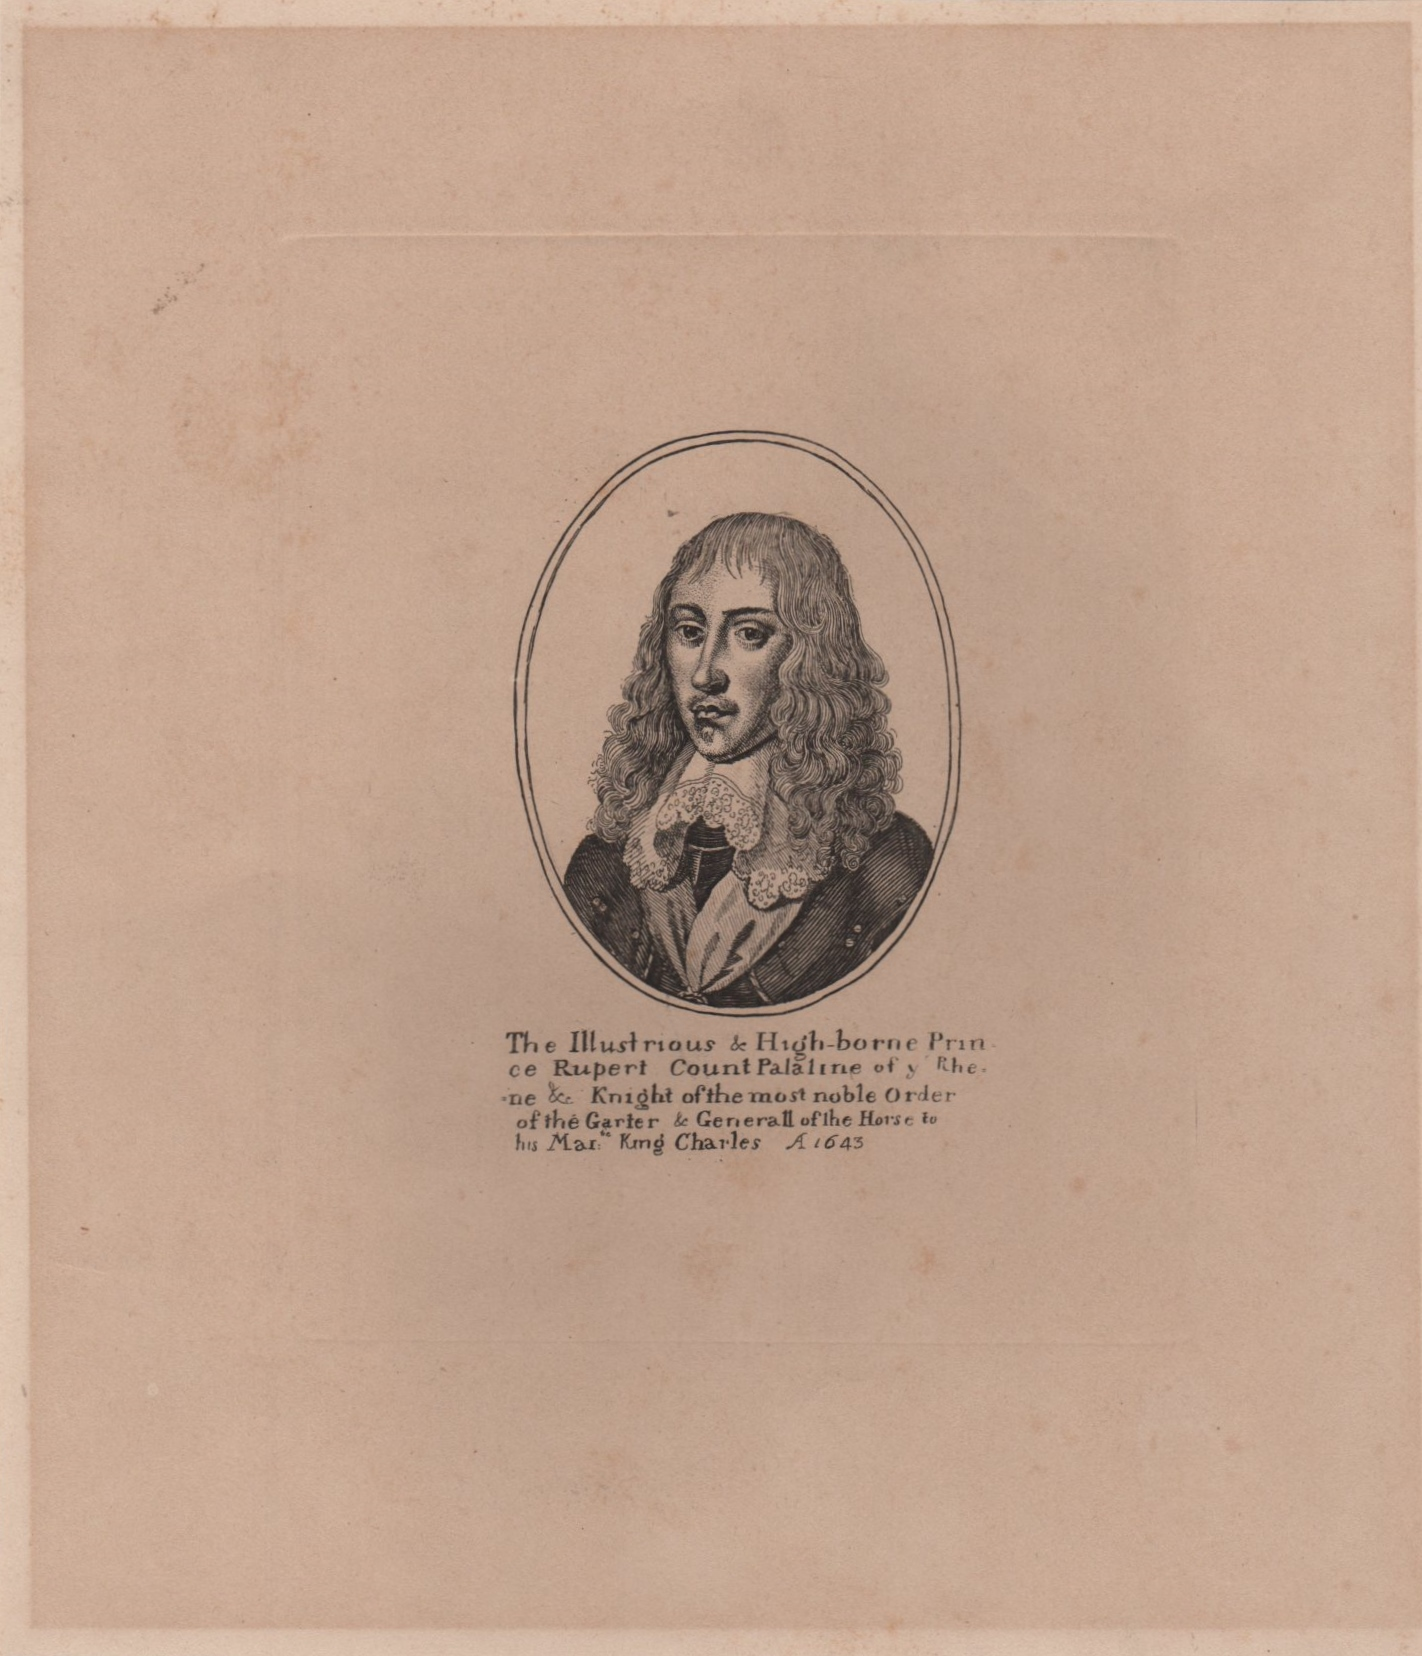 Lot 354 - RUPERT OF THE RHINE: (1619-1682) German Prince, a noted Soldier, Admiral, Scientist,